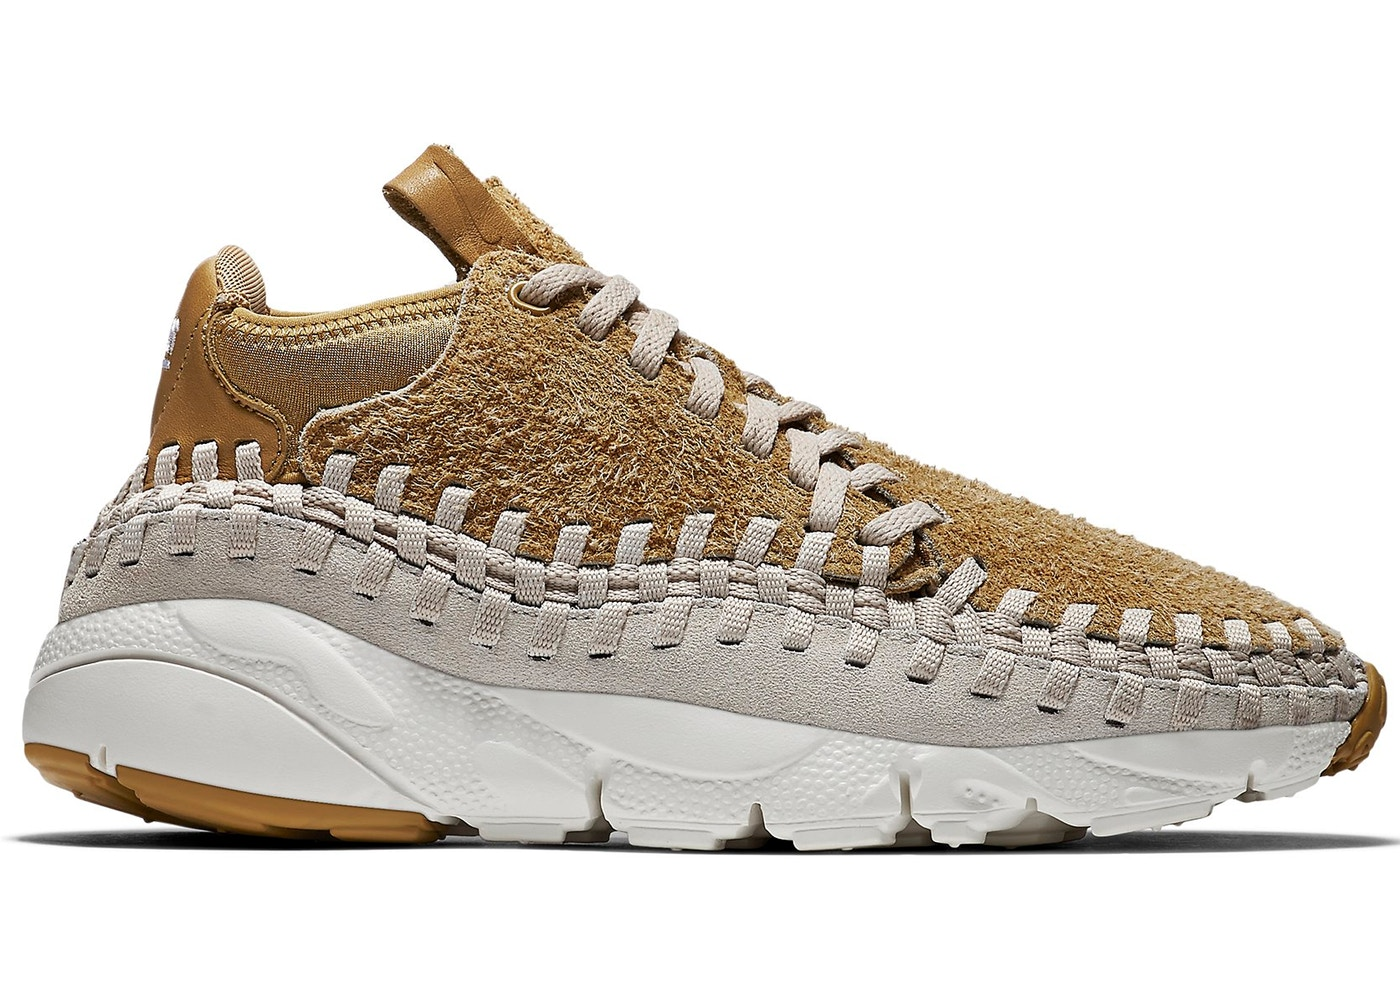 best service f8a50 44d3f Sell. or Ask. Size: 6.5. View All Bids. Air Footscape Woven Chukka Flat Gold